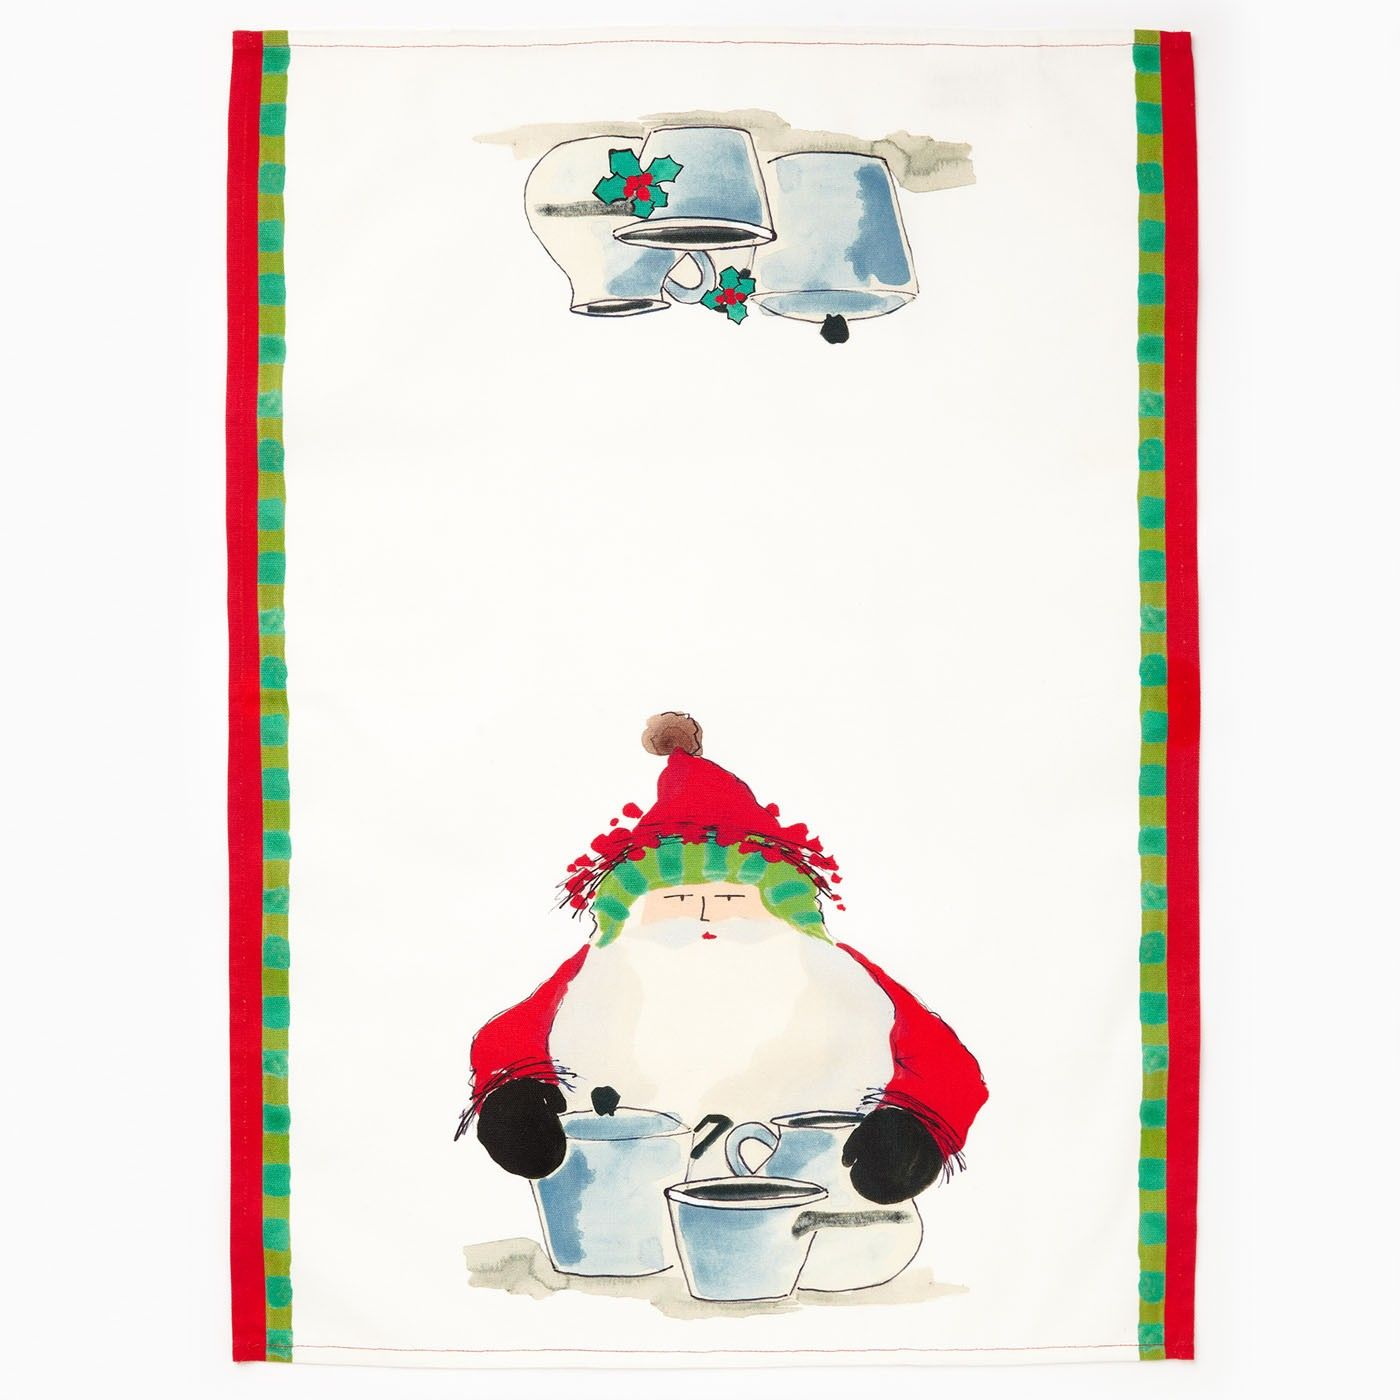 The Old St. Nick Dish Towel with Pots and Pans features a handpainted design by Alessandro Taddei that is then custom printed on the 100% cotton fabric.